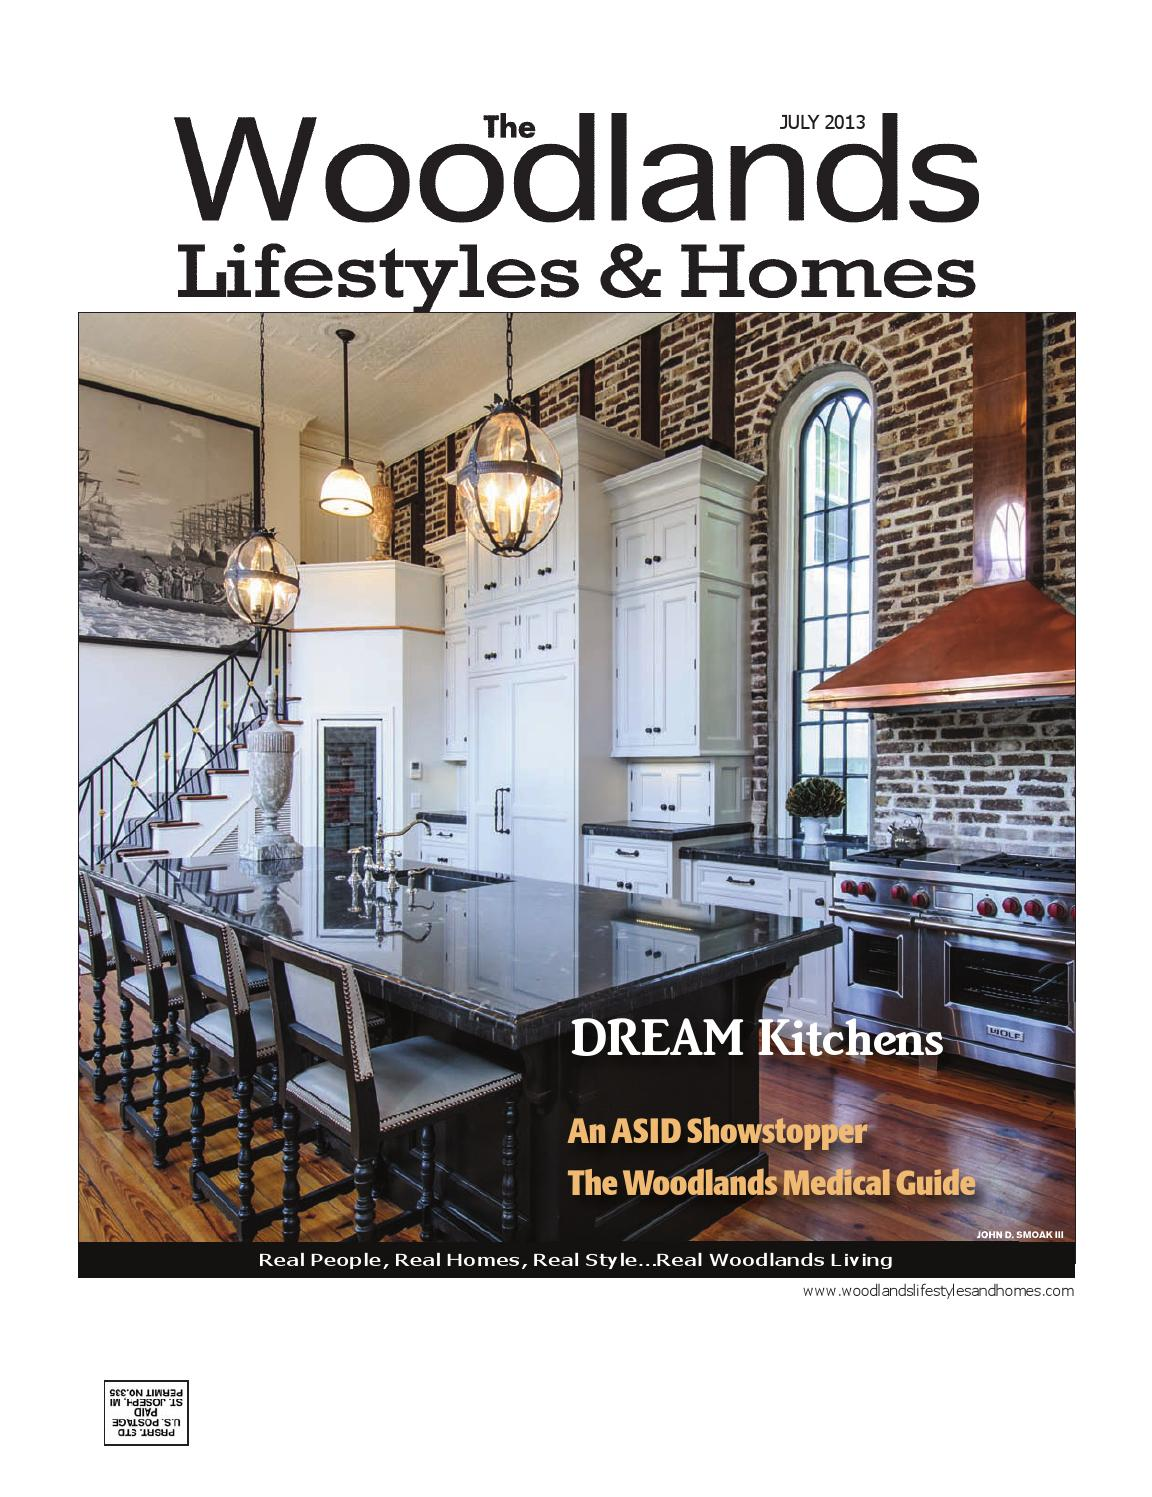 the woodlands lifestyles & homes july 2013 by lifestyles